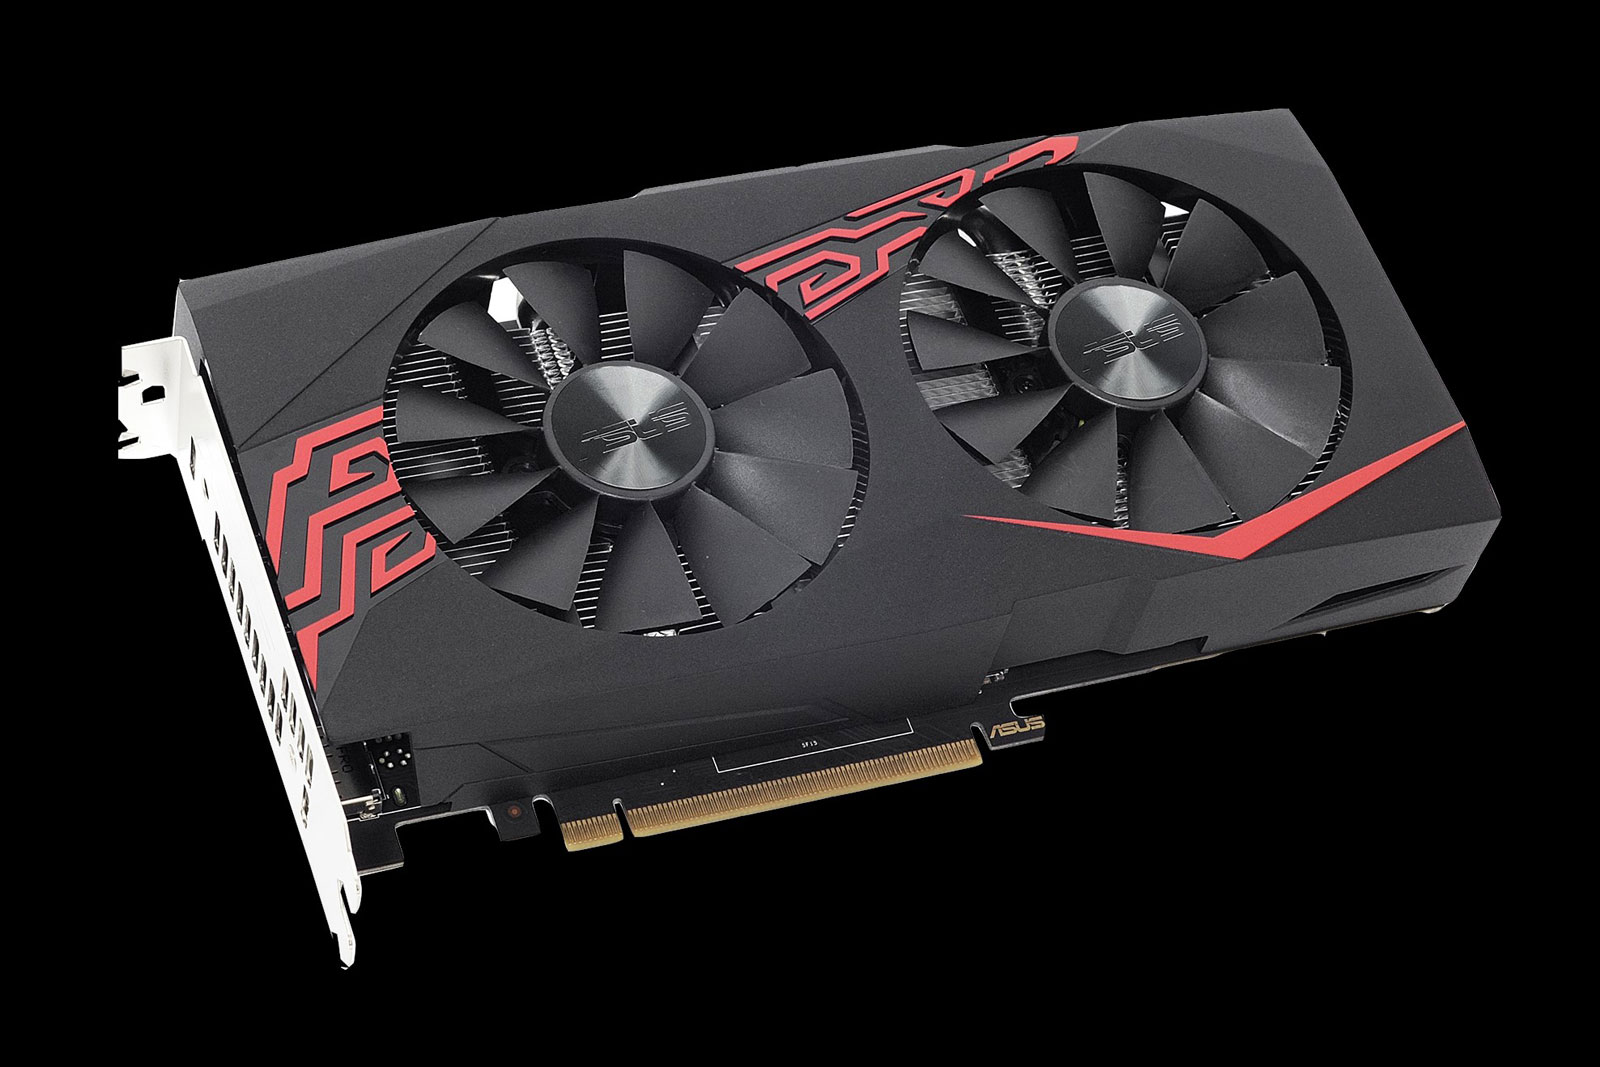 AMD and NVIDIA go after Bitcoin miners with new video cards